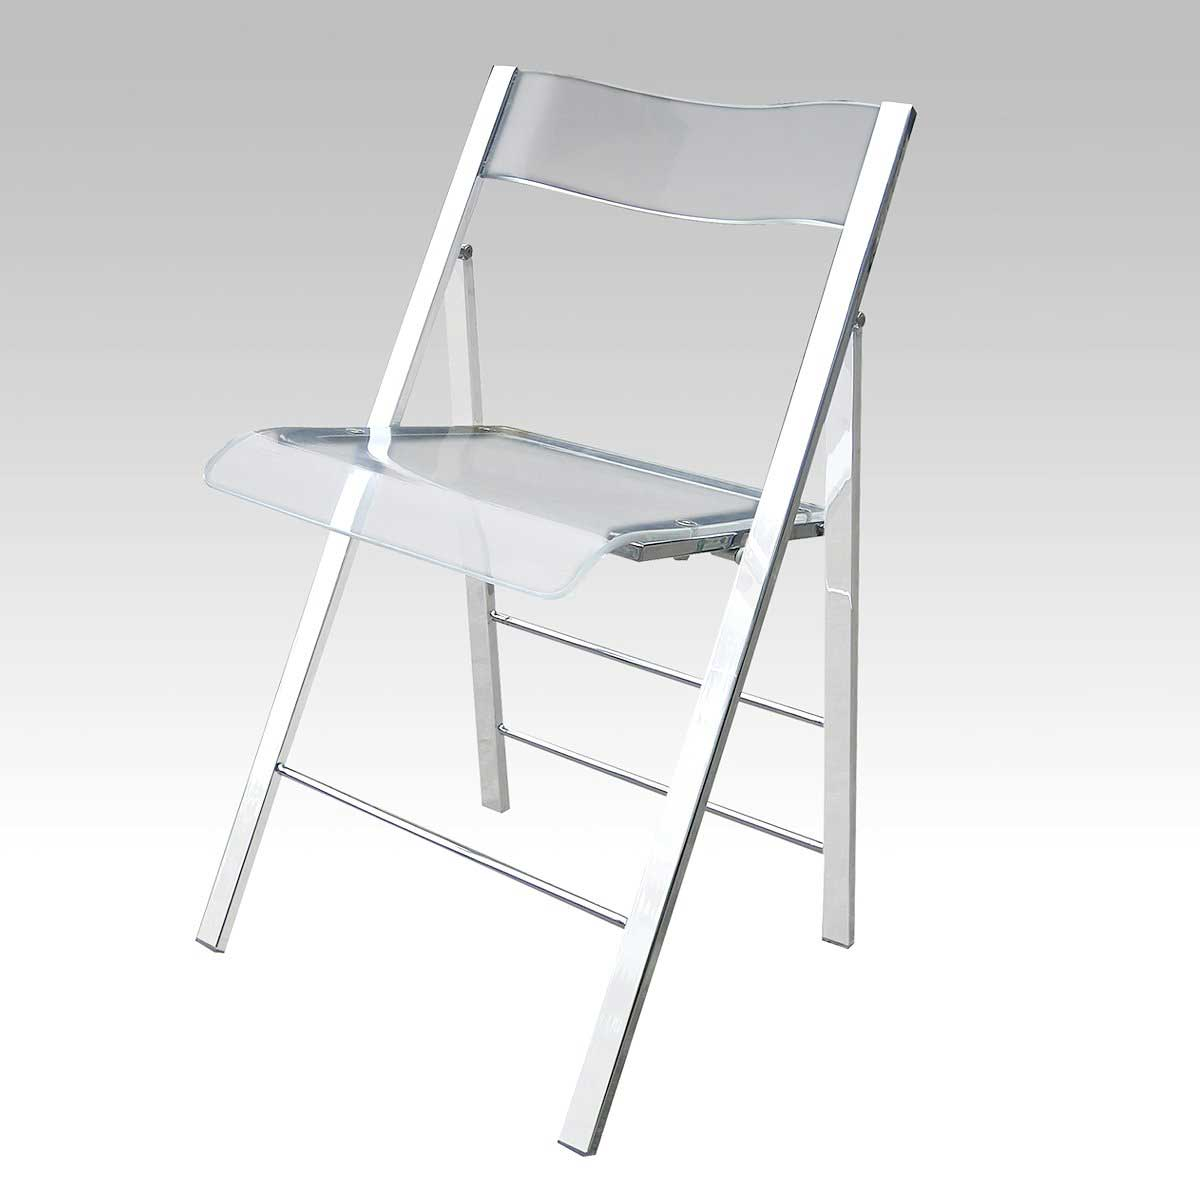 Lucite Folding Chairs Transparent Chairs Office Furniture